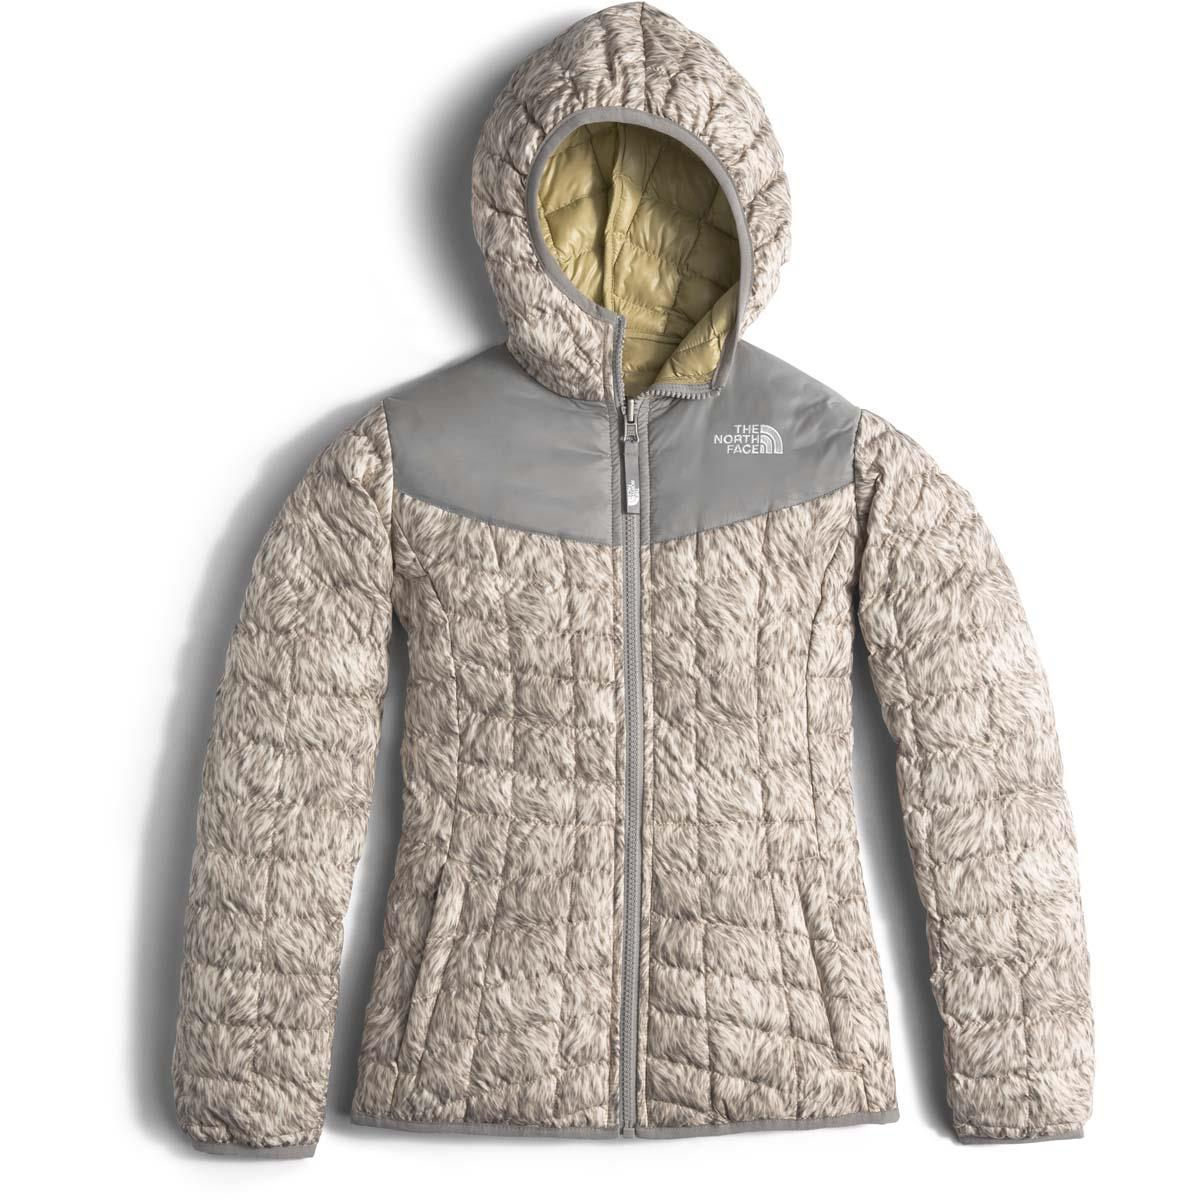 7ddaa3bf84d4 The North Face Reversible Thermoball Hoodie Girls. Loading zoom